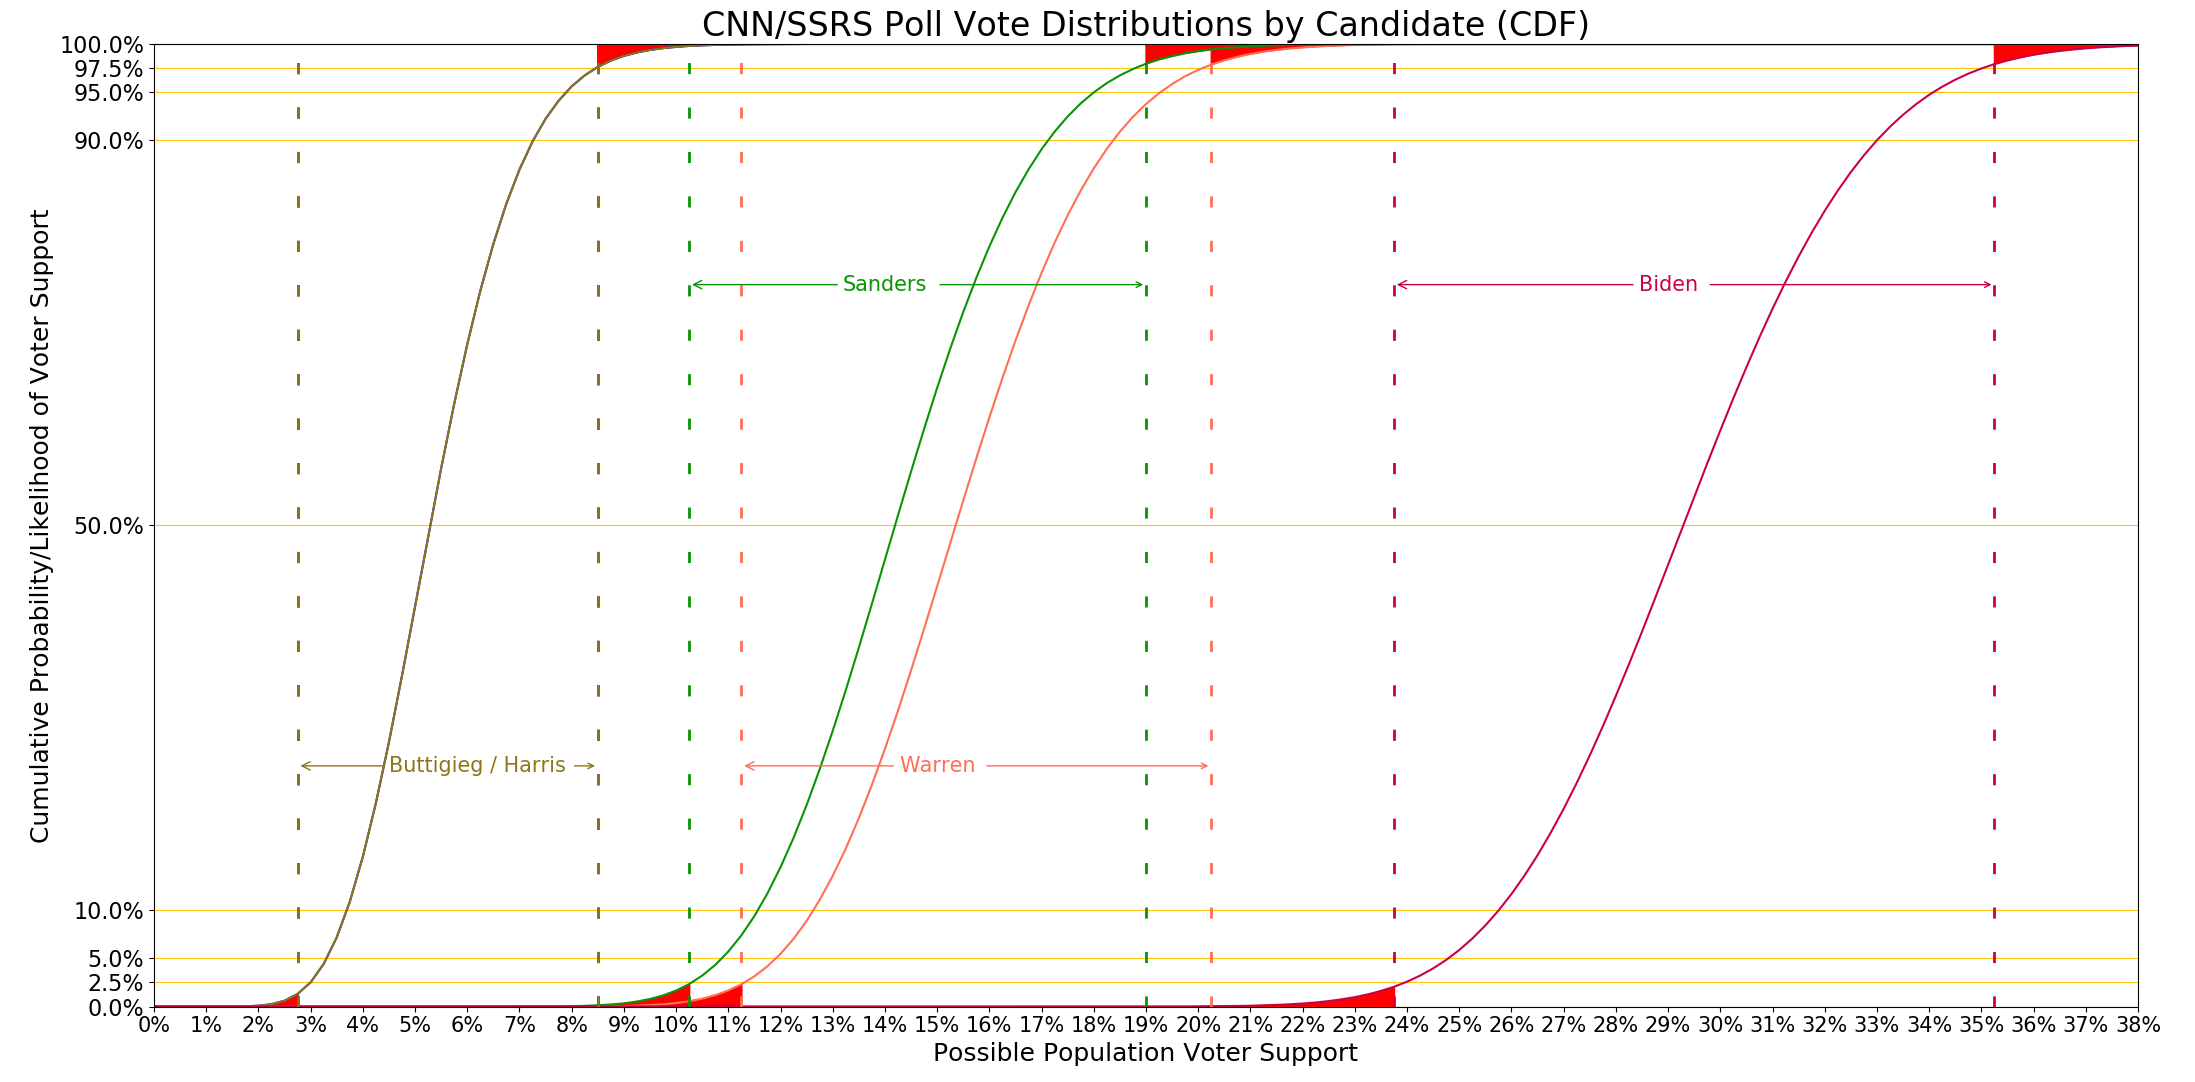 CNN SSRS distributions graph with DE